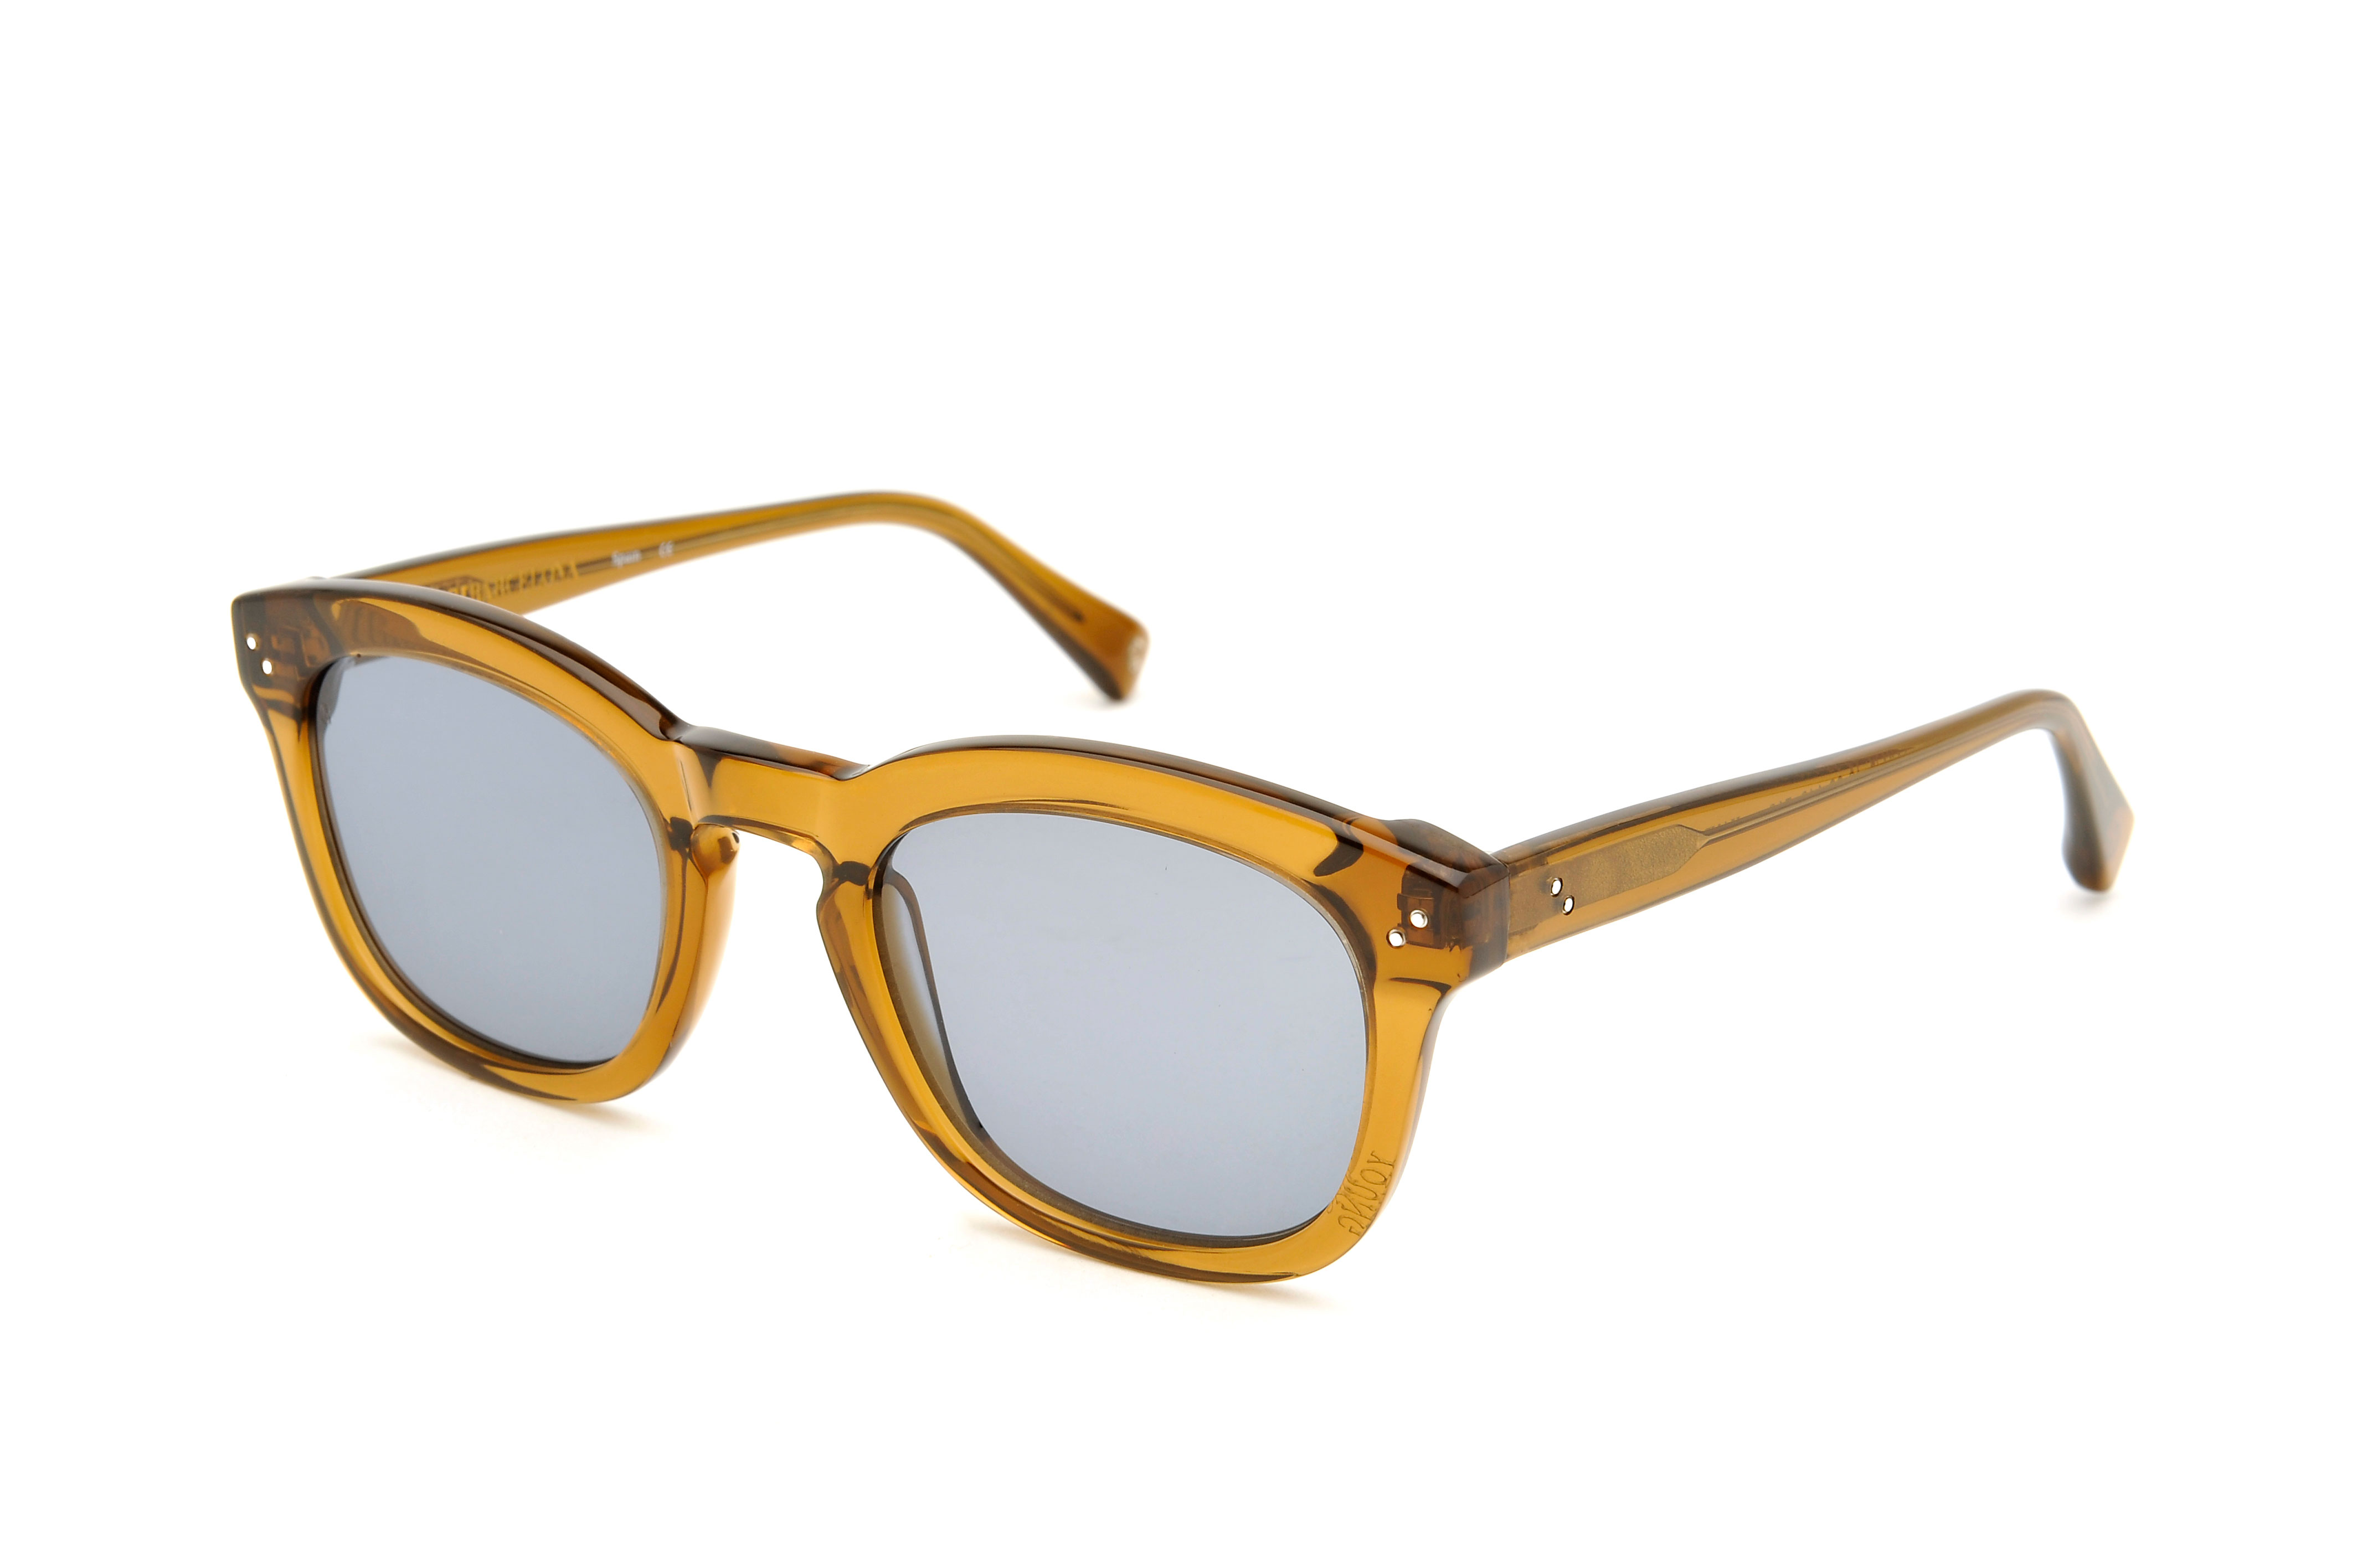 Young acetate squared brown sunglasses by GIGI Studios